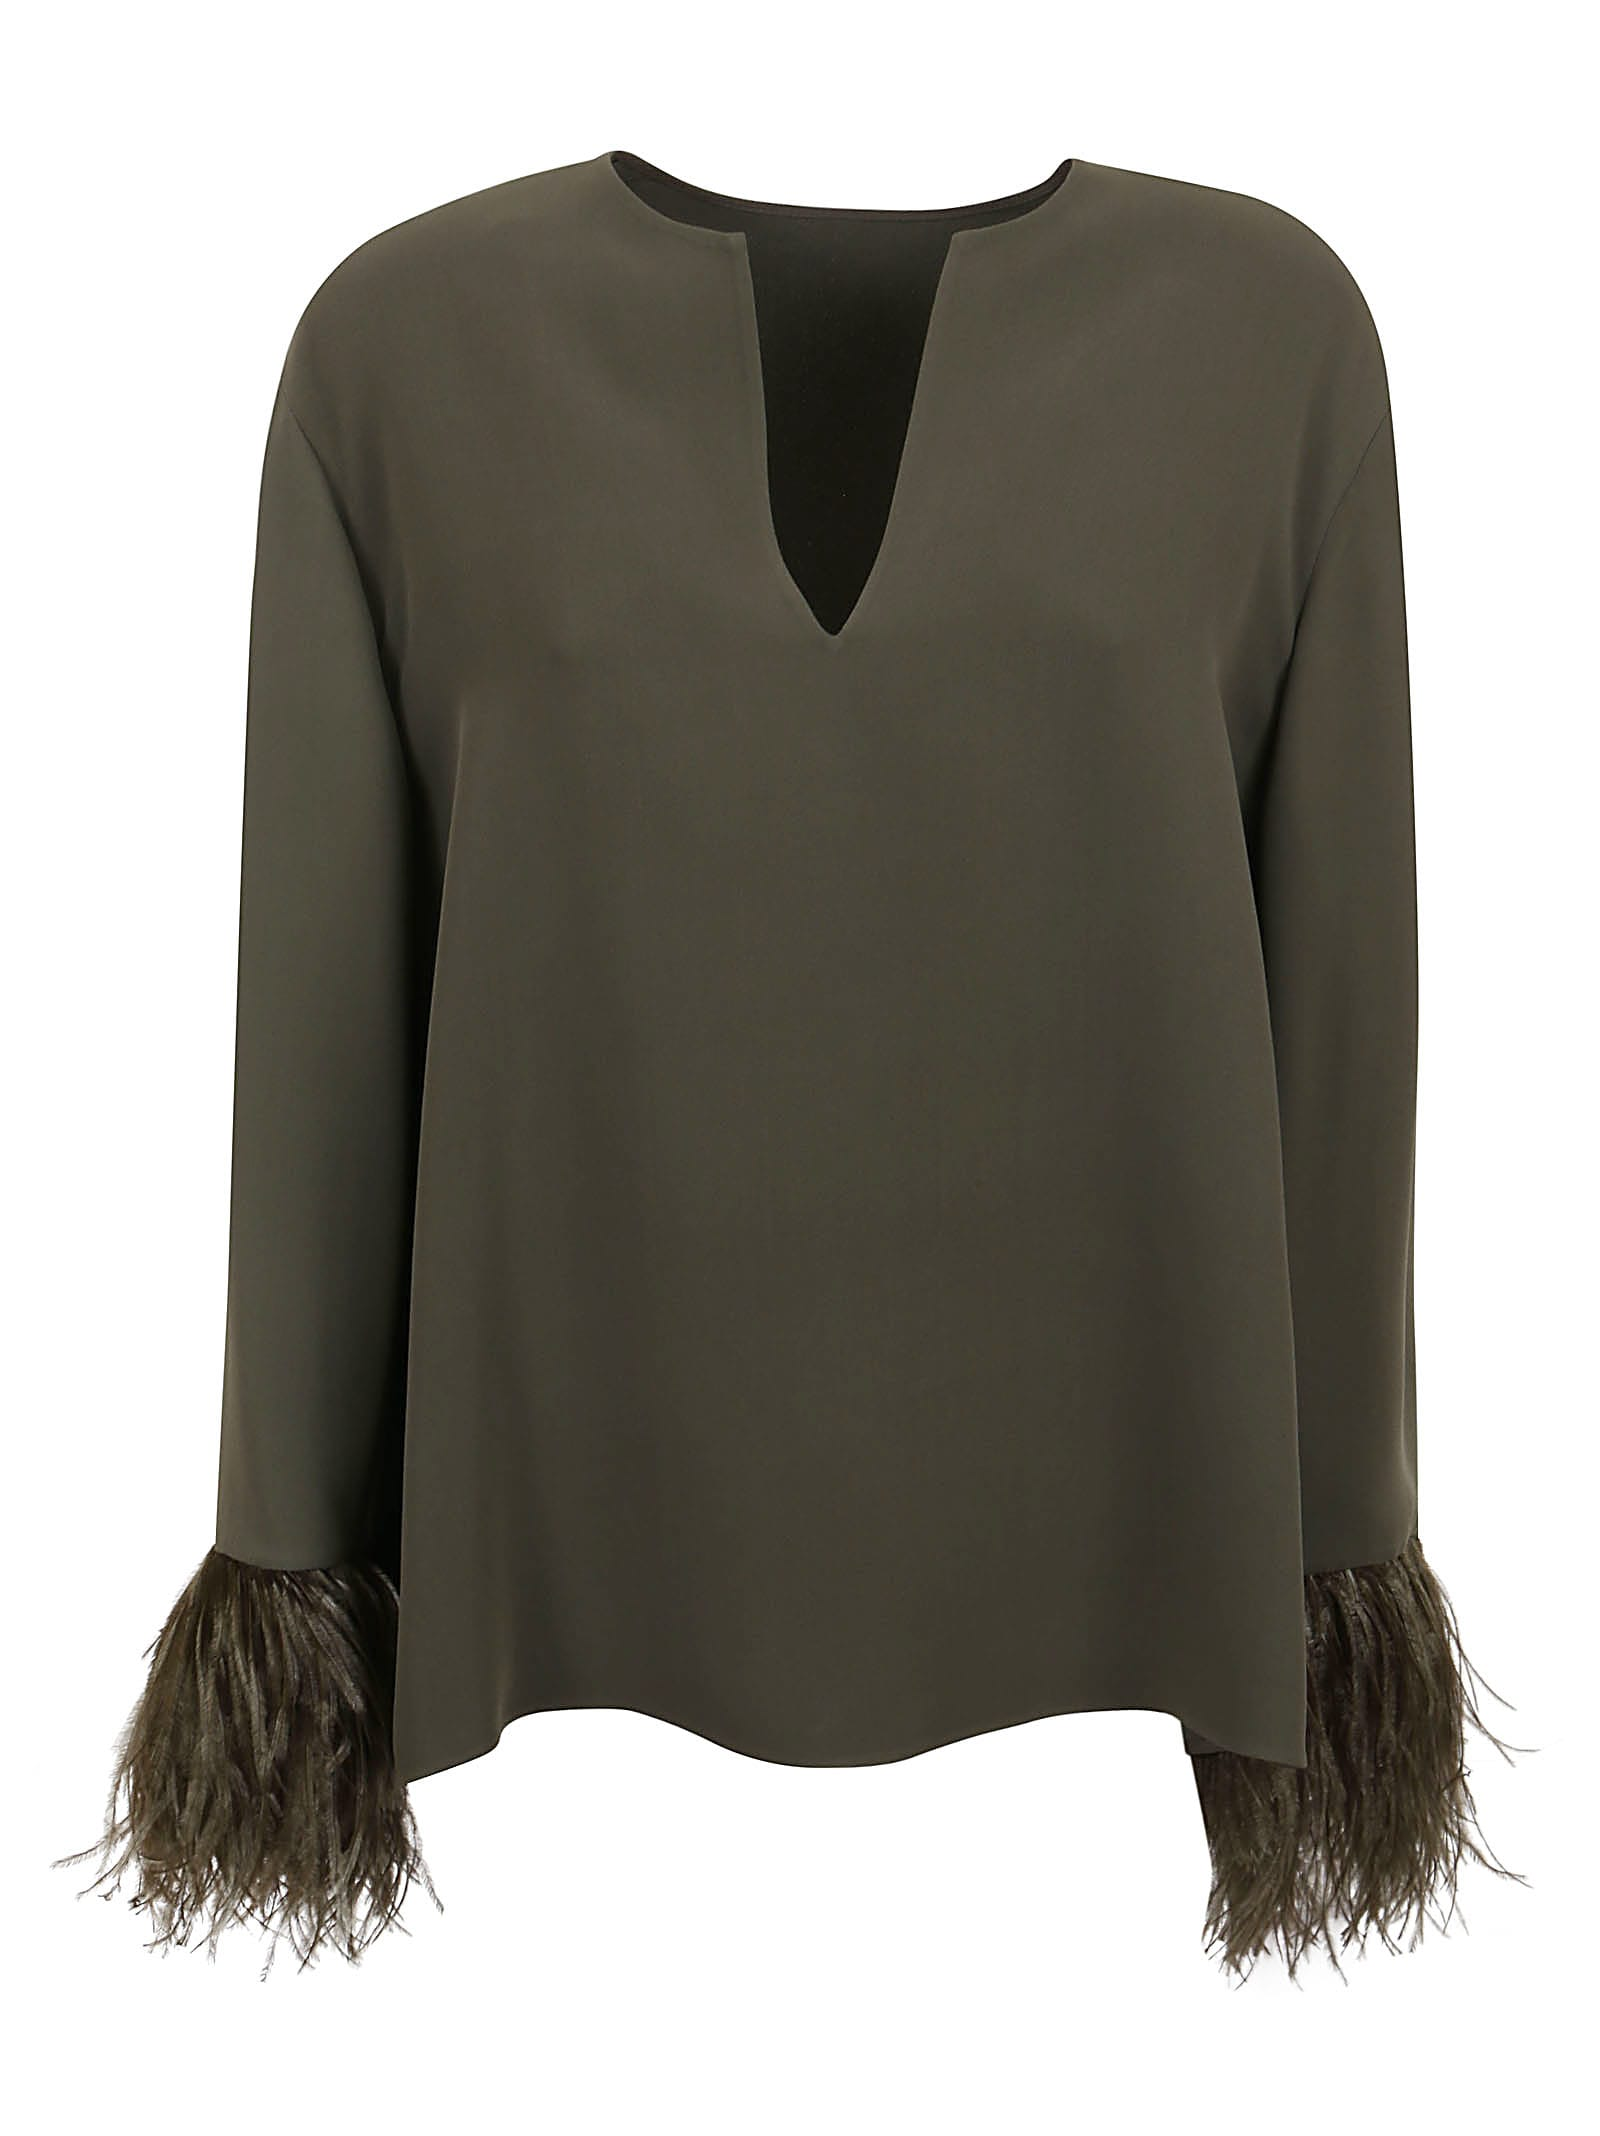 Valentino Top - With Feathers